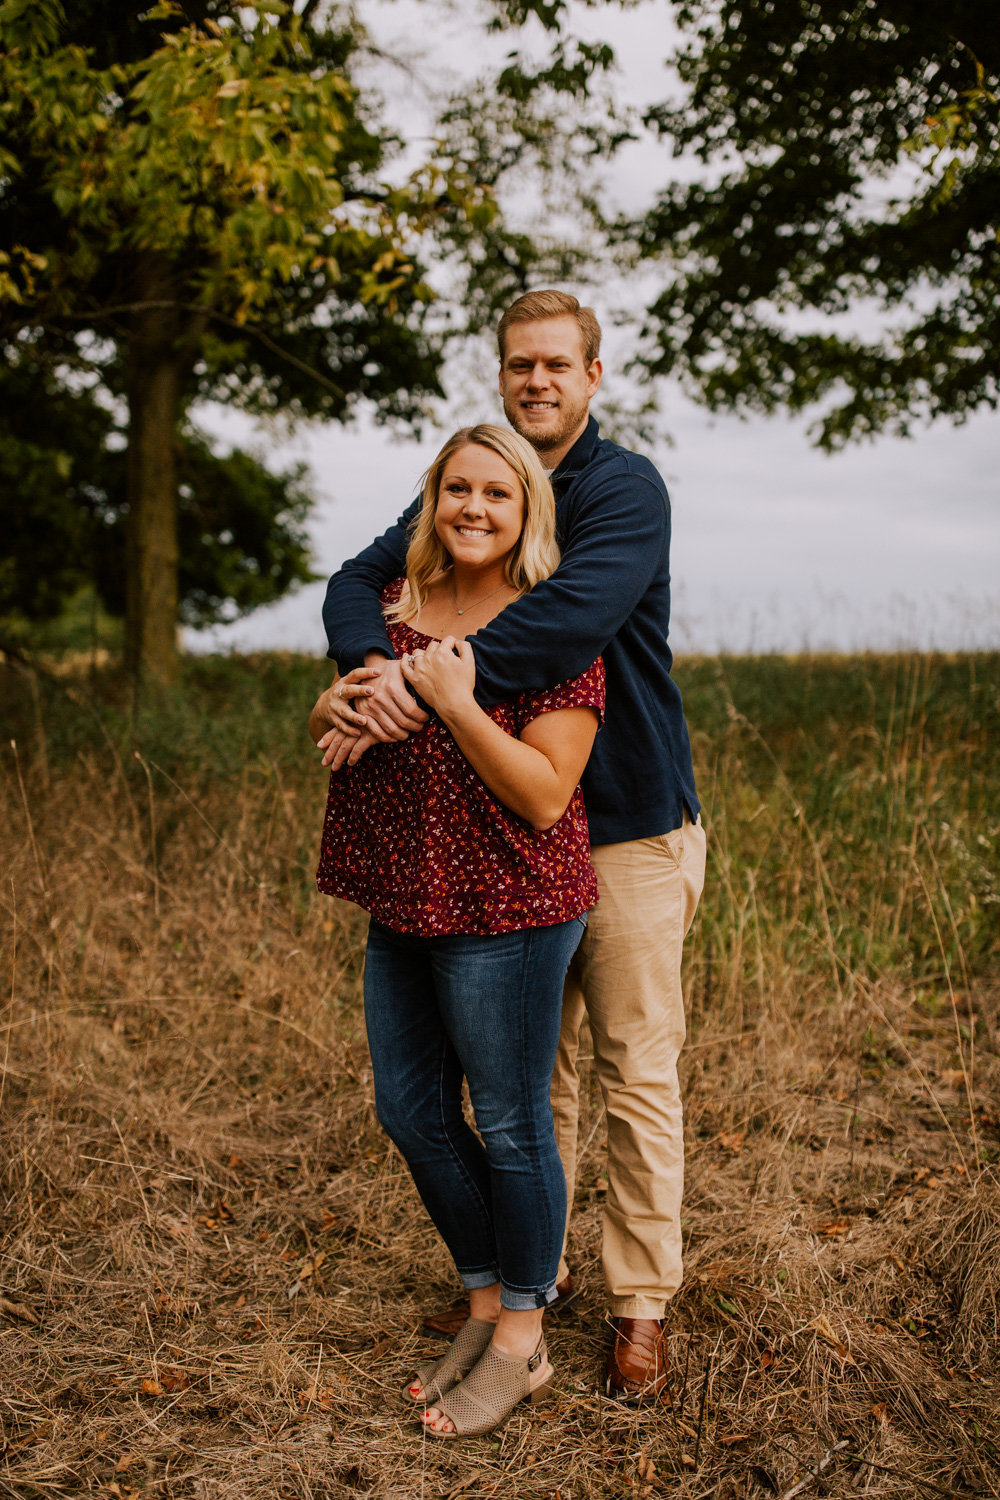 Cozy-Autumn-Engagement-Session-Prophetstown-19